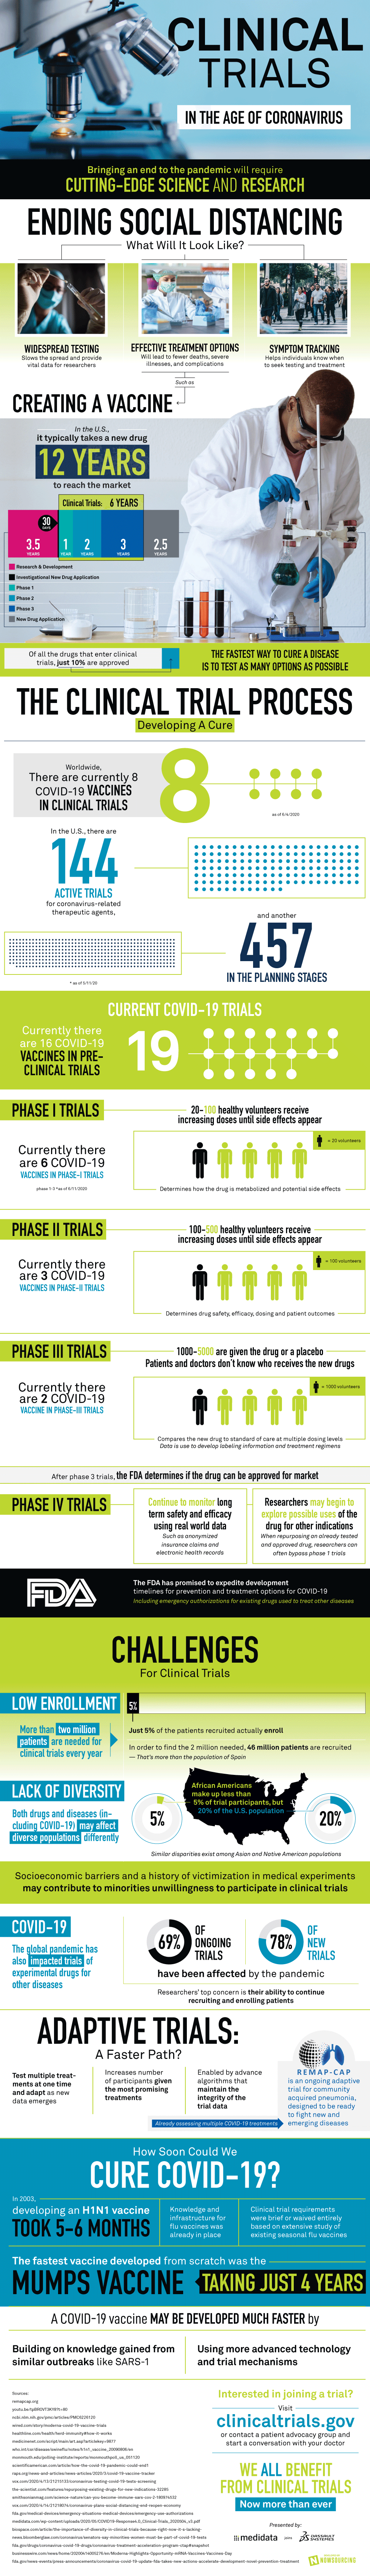 Infographic: How do clinical trials work?